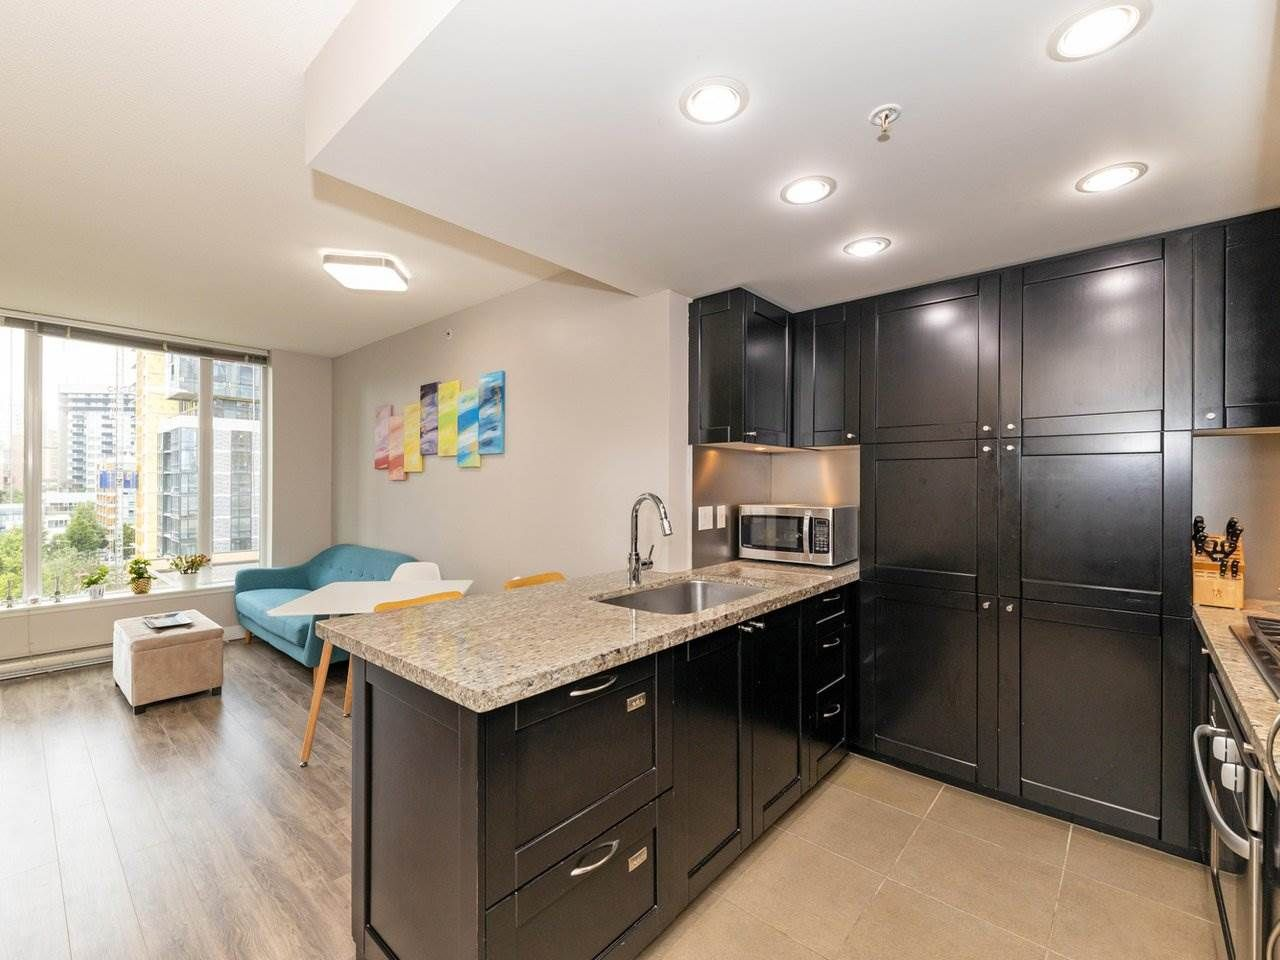 """Main Photo: 901 1133 HOMER Street in Vancouver: Yaletown Condo for sale in """"H&H"""" (Vancouver West)  : MLS®# R2470205"""